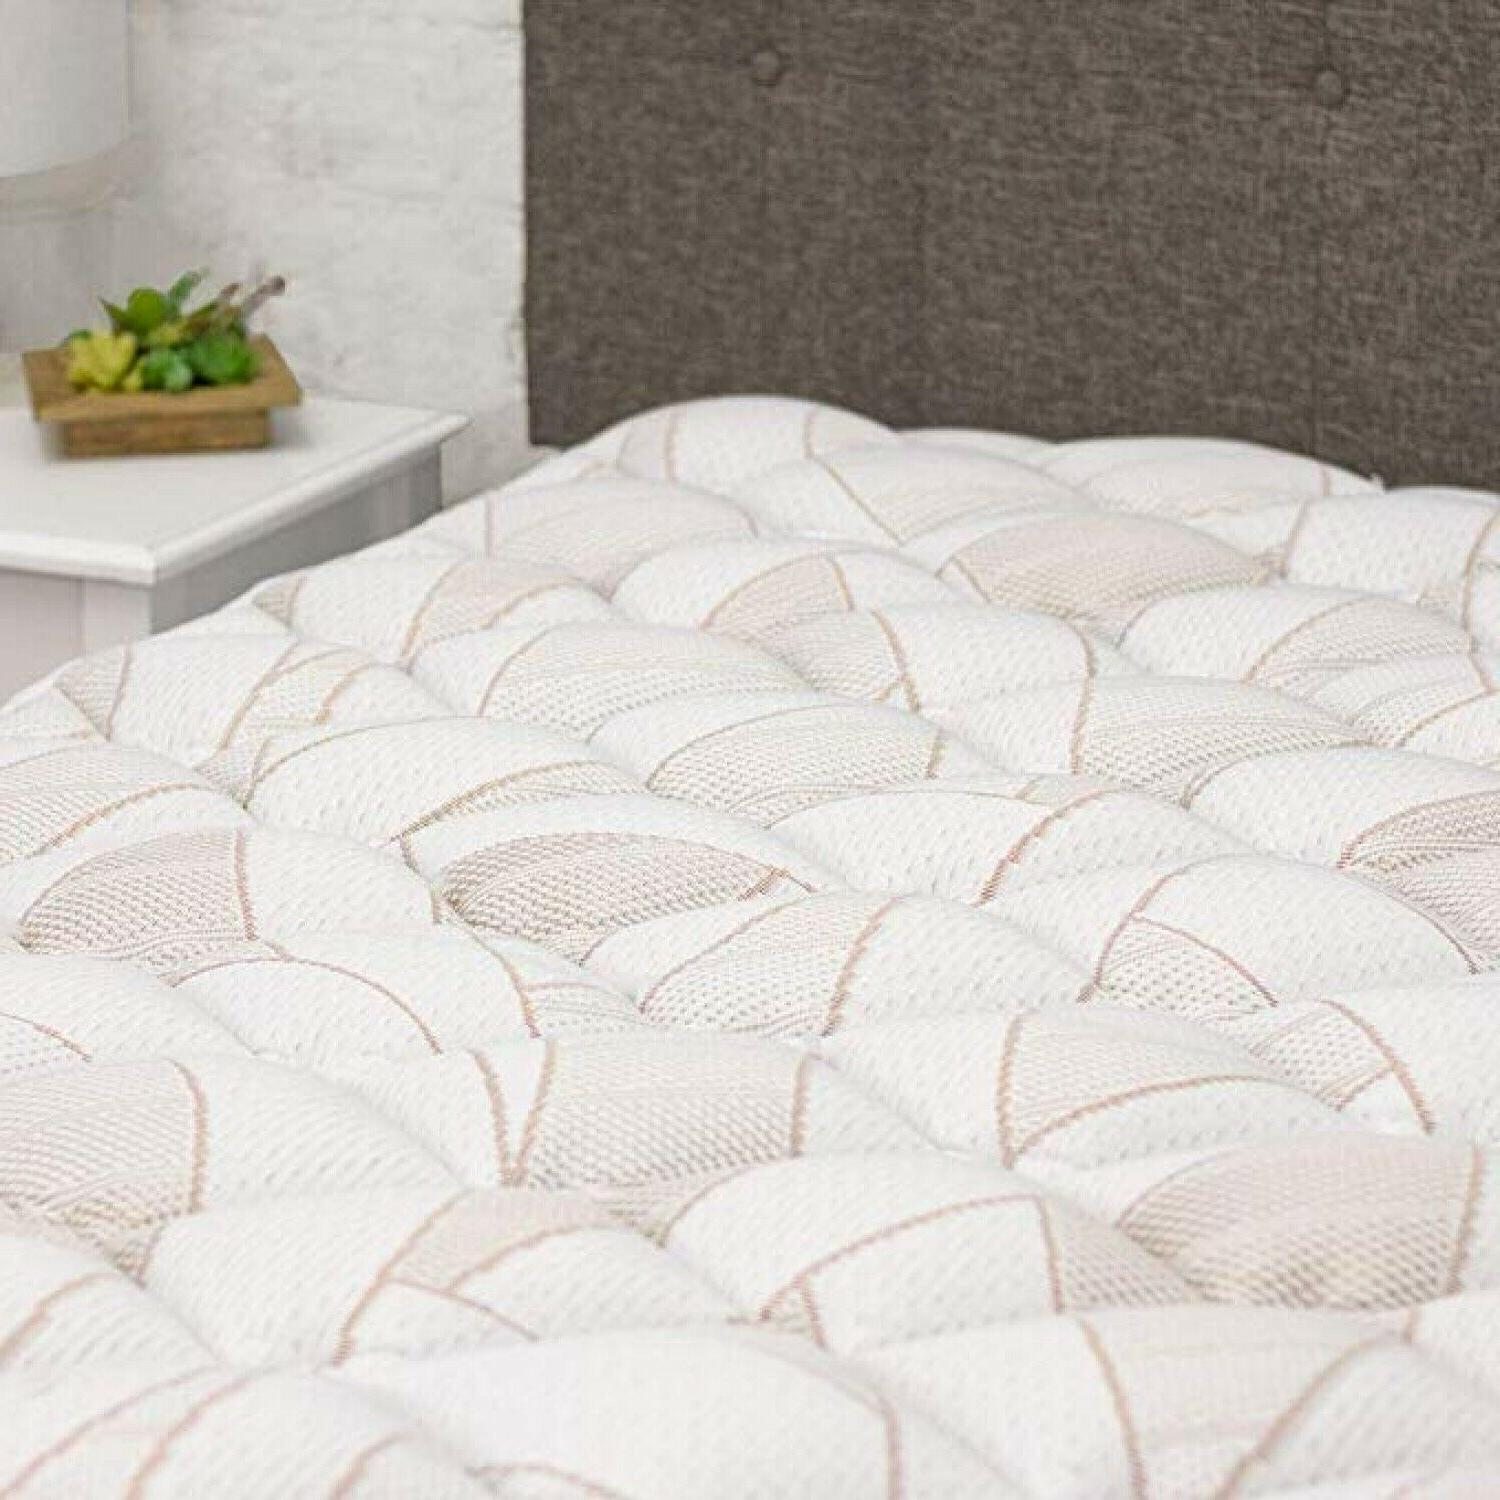 Copper Mattress with Skirt Extra Plush Pad